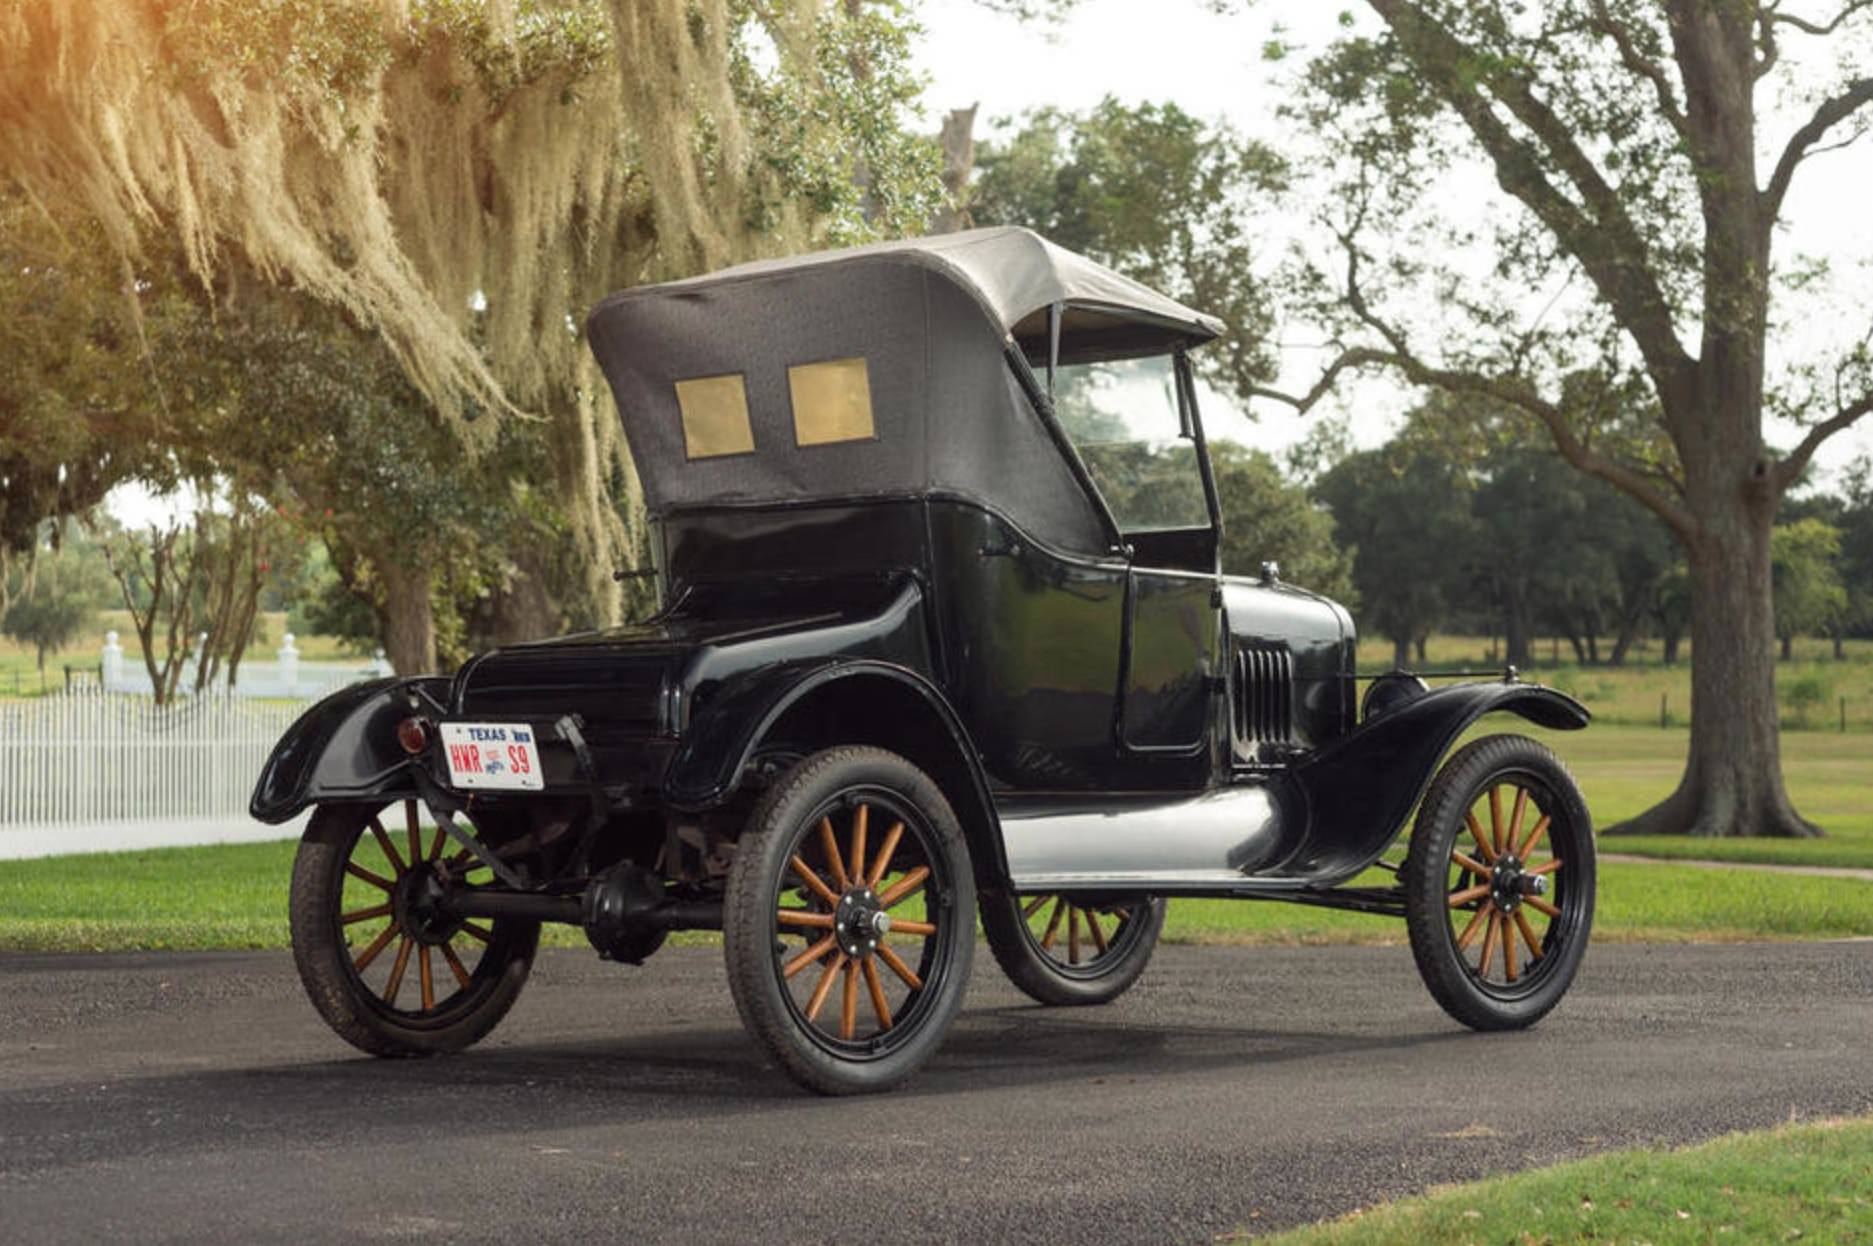 ford model t related - photo #9